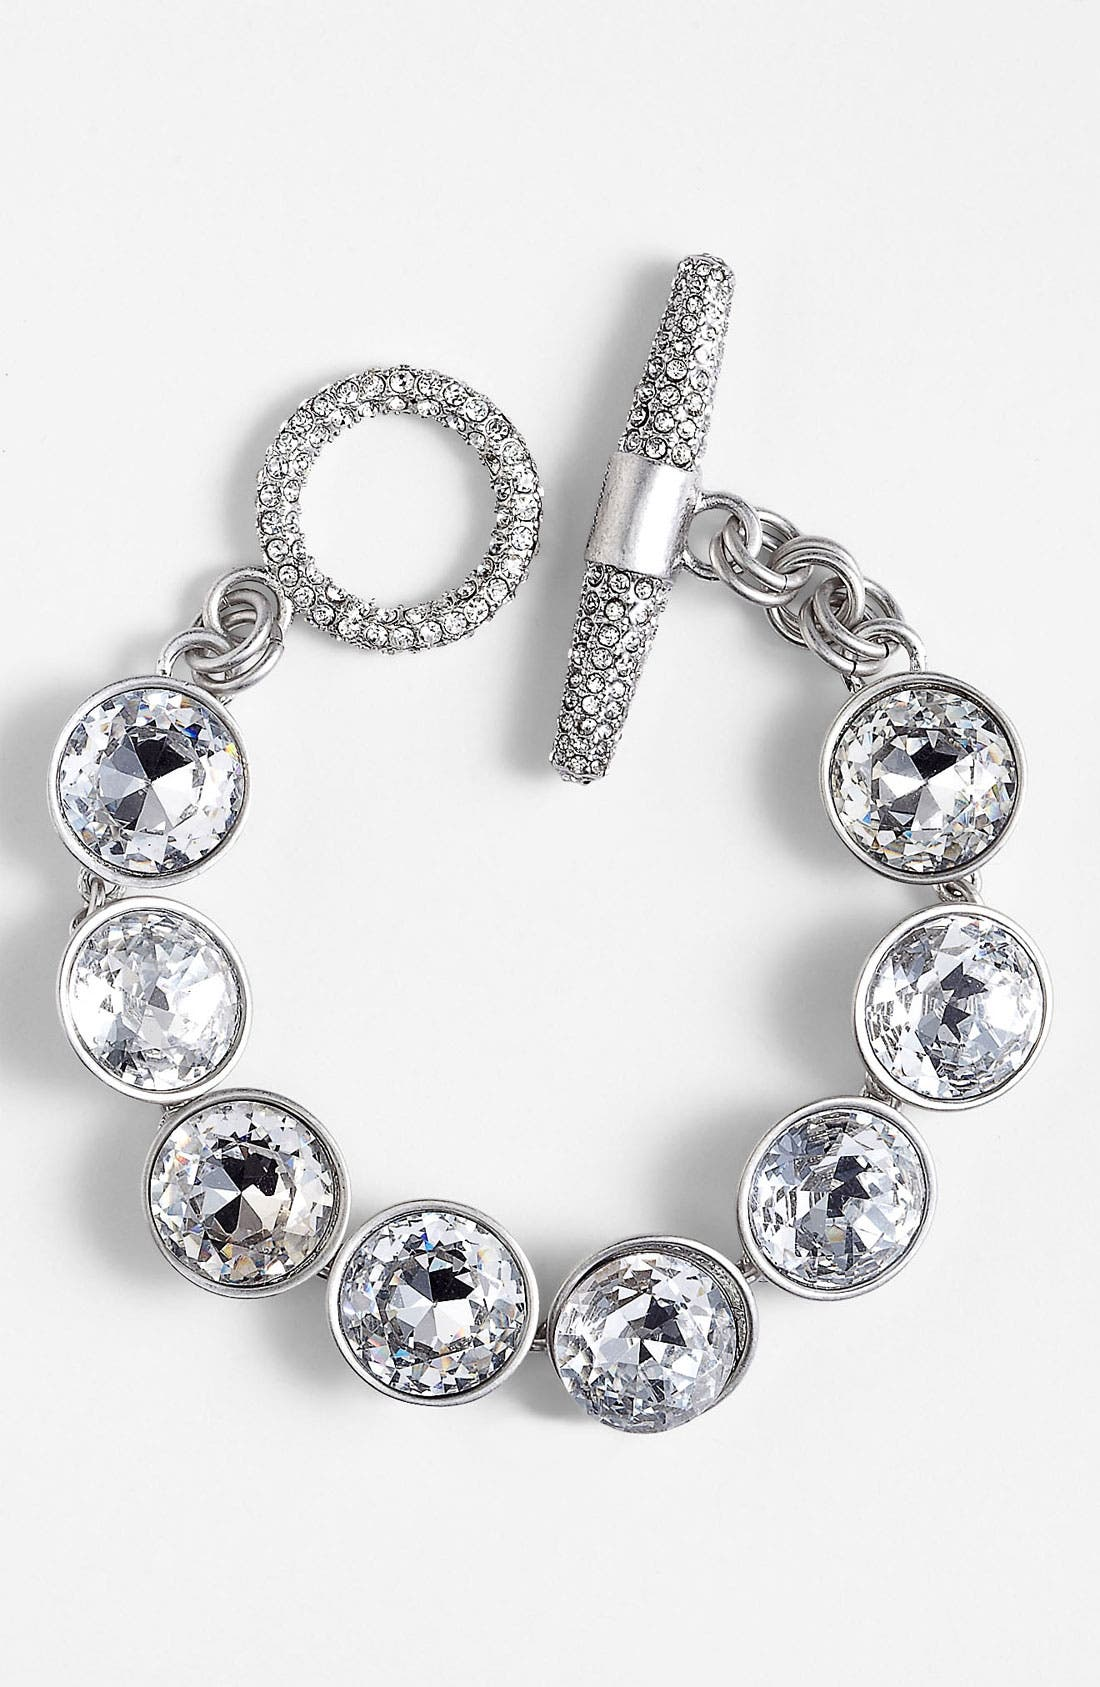 Alternate Image 1 Selected - Juicy Couture 'Glam Rocks' Station Bracelet